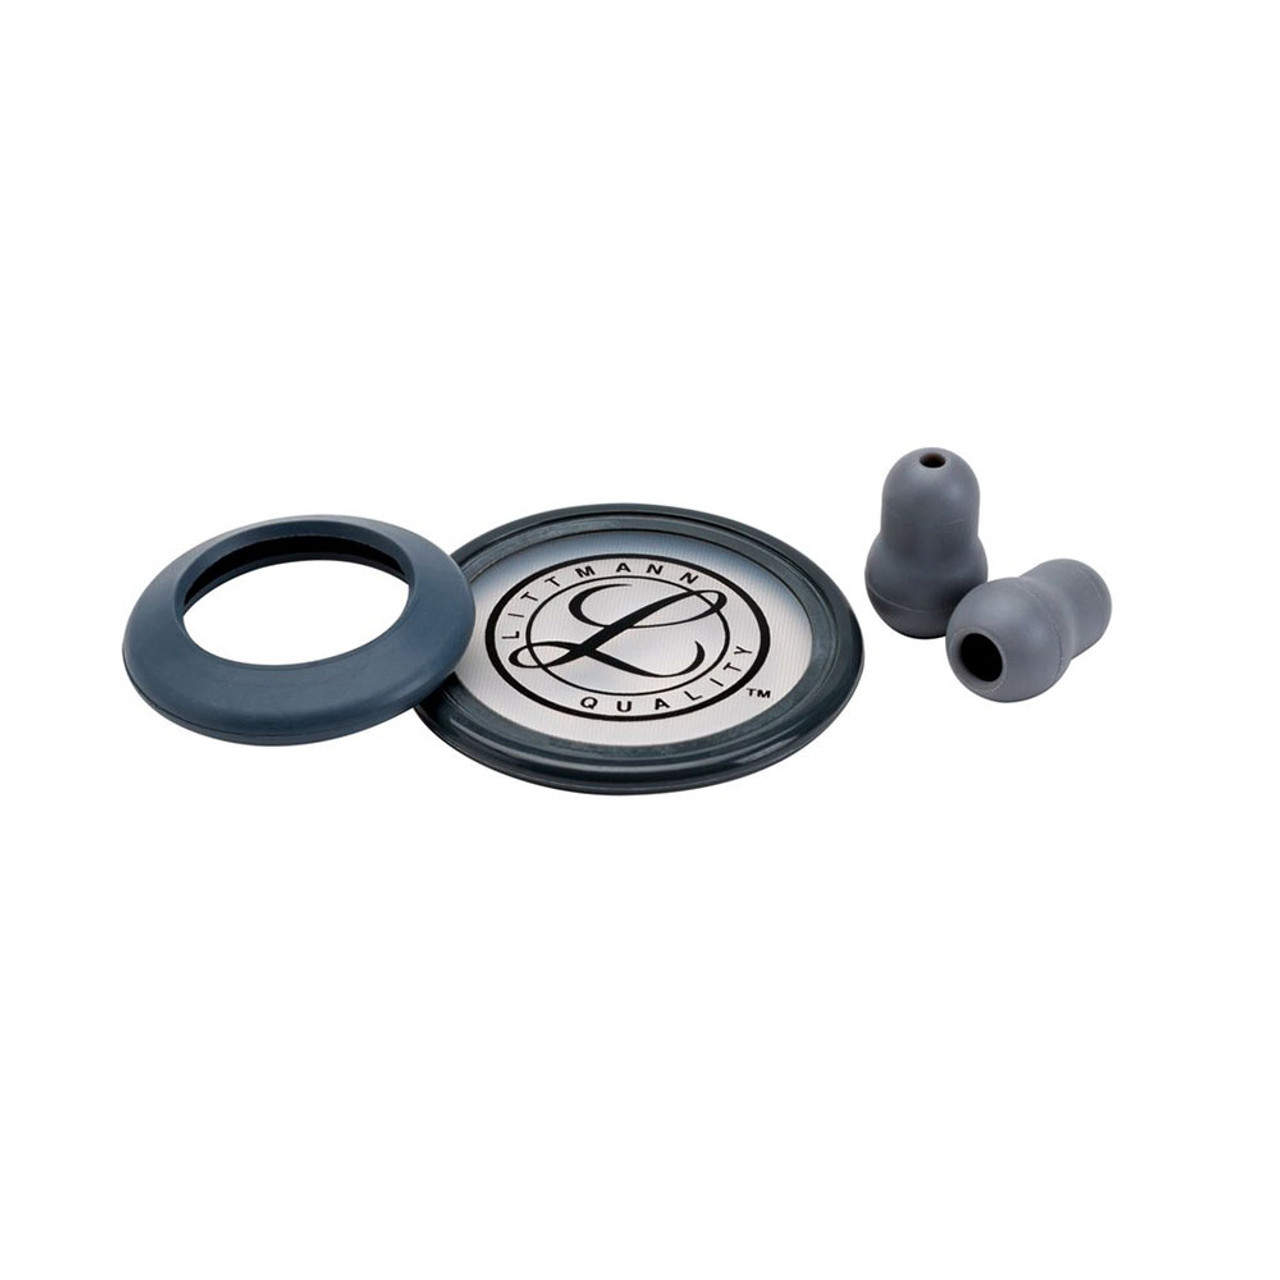 Littmann Stethoscope Spare Parts Kit, Classic II SE, Gray, 40006